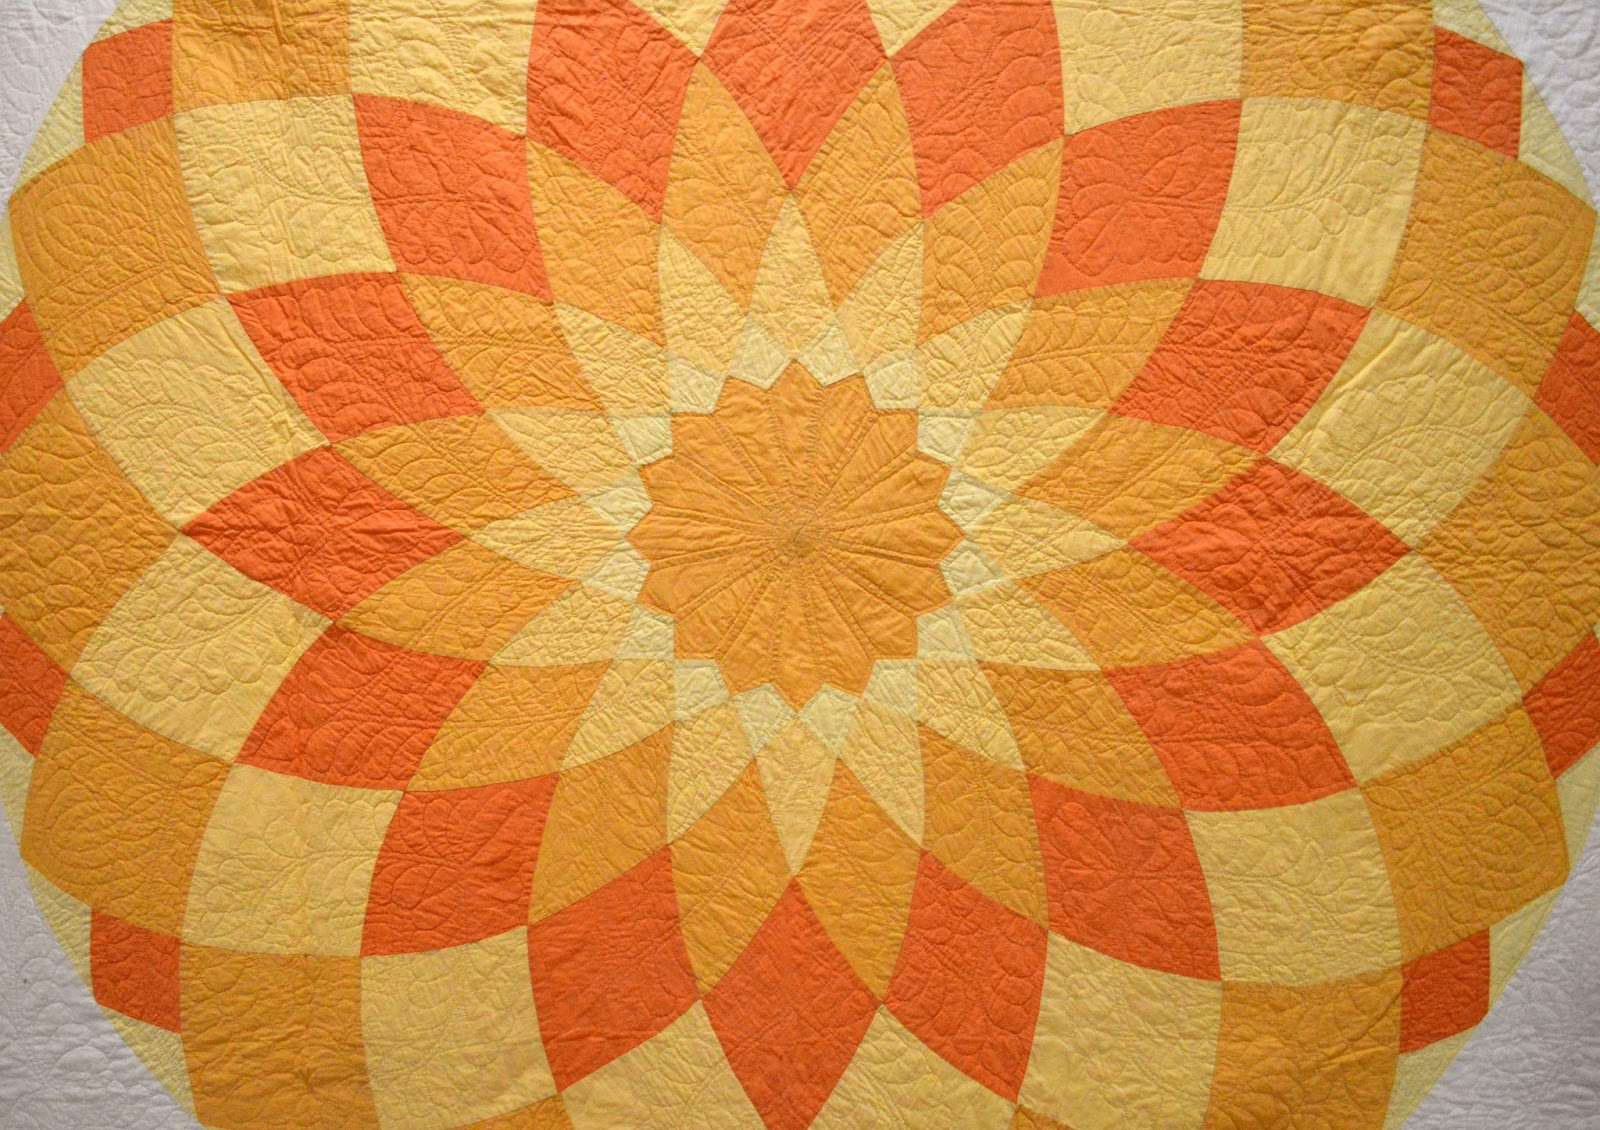 Giant Dahlia Quilt Images : Wonkyworld: The Giant Dahlia